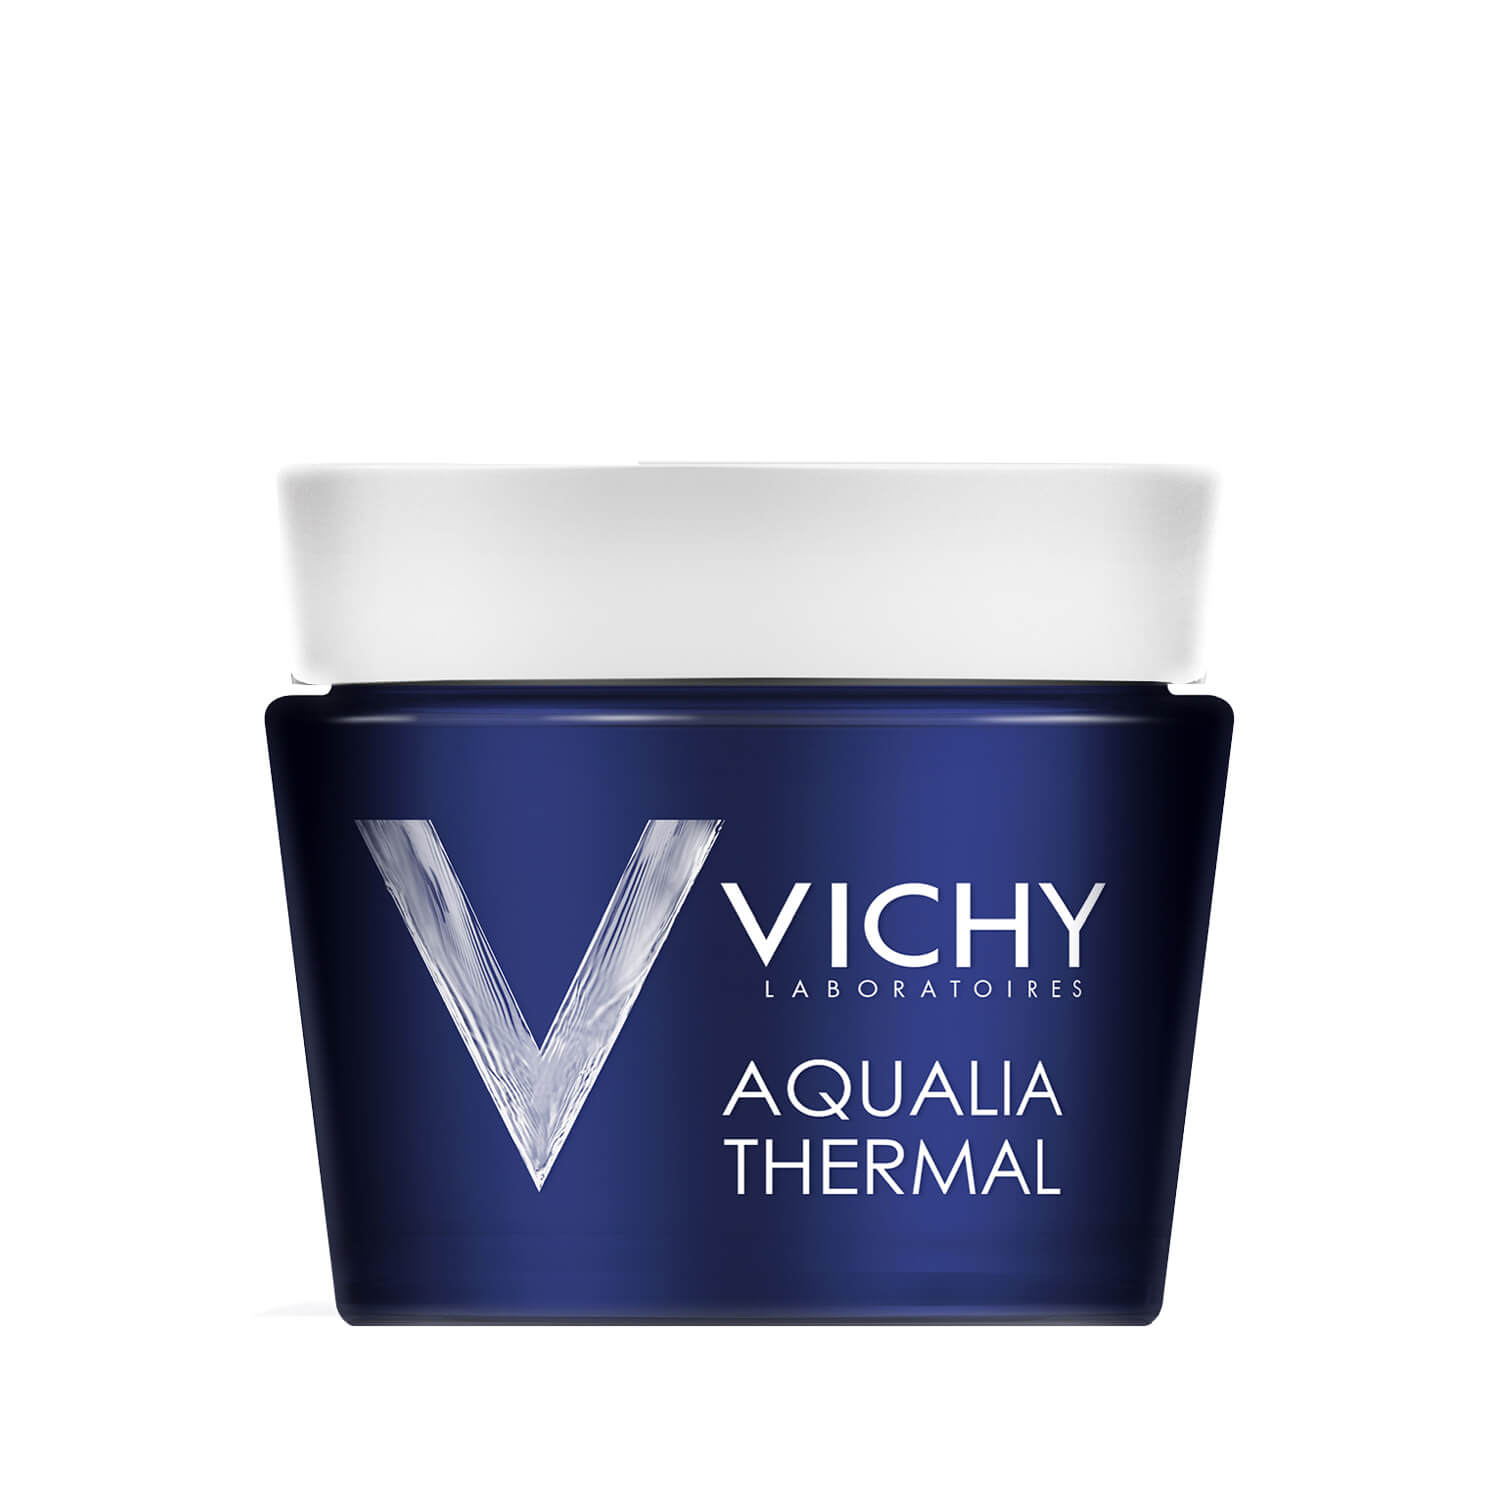 vichy aqualia thermal spa